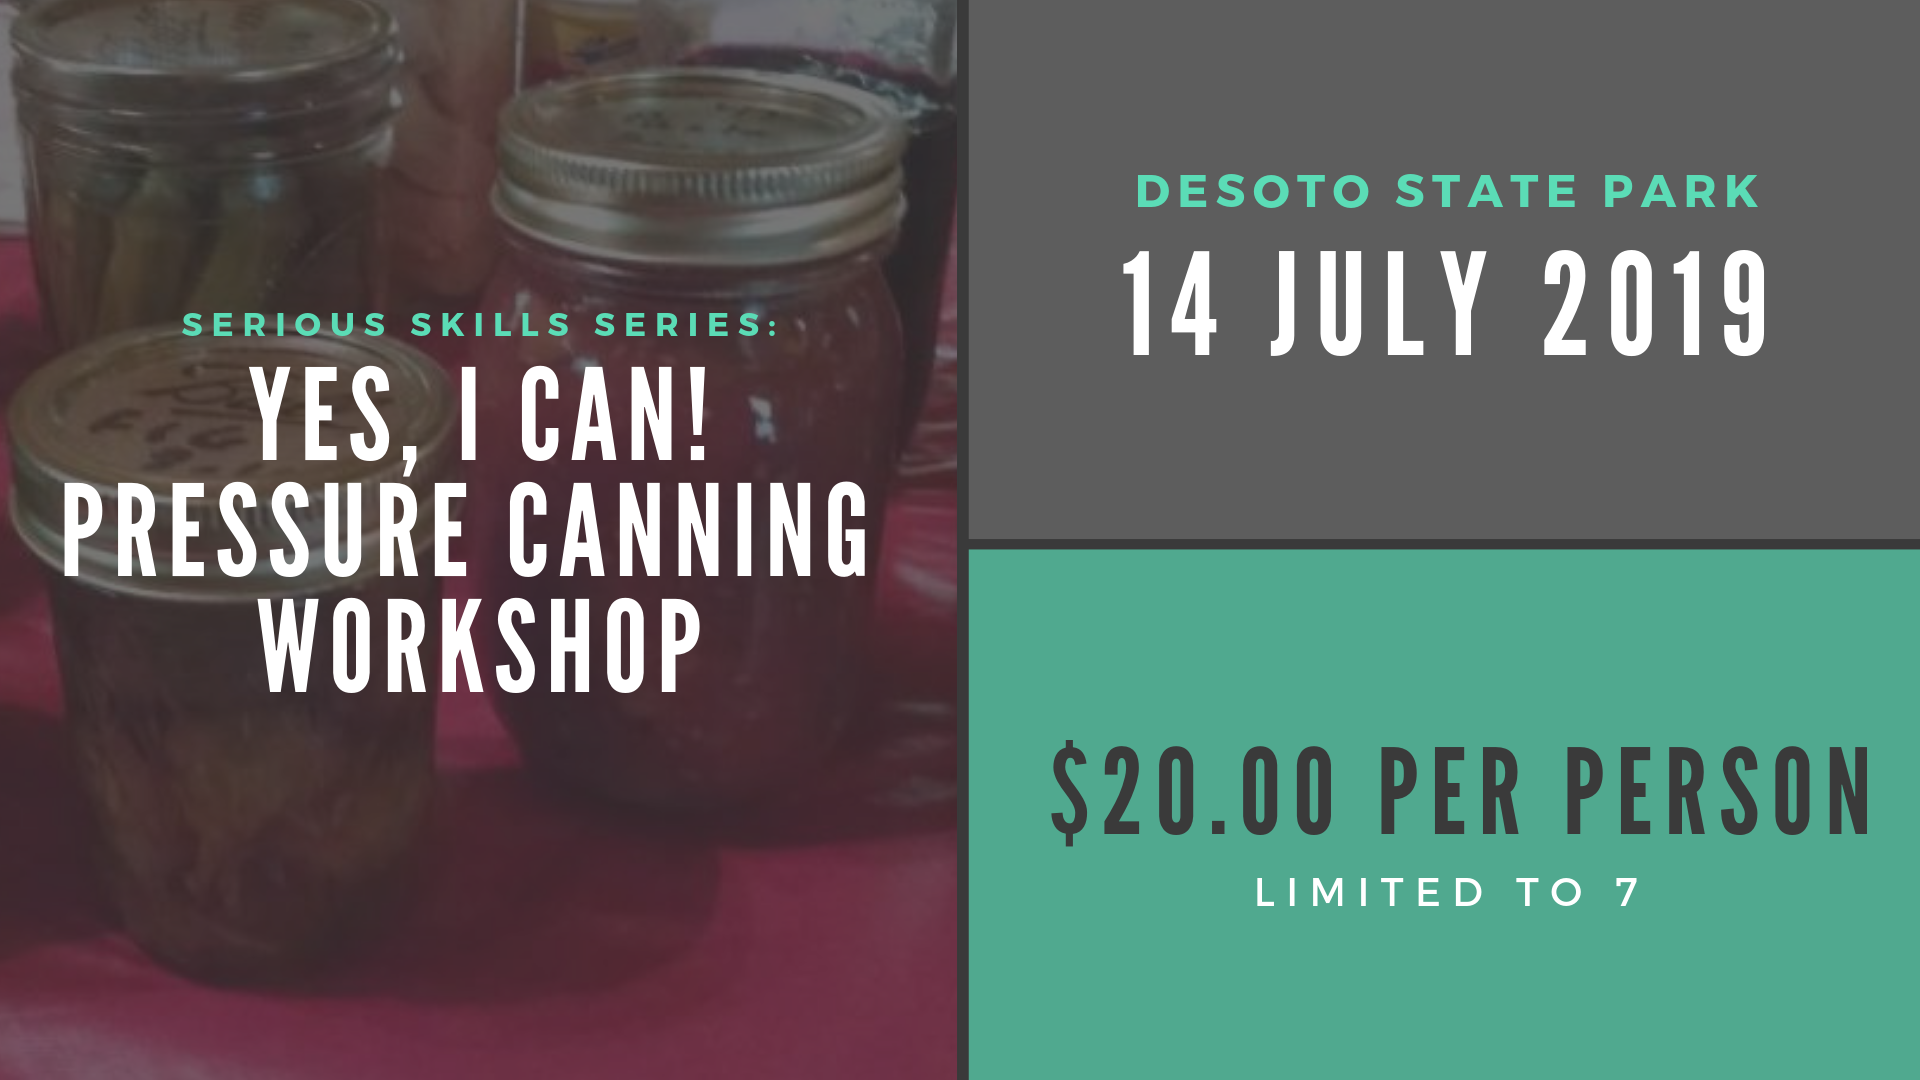 Yes, I can! Pressure Canning Workshop